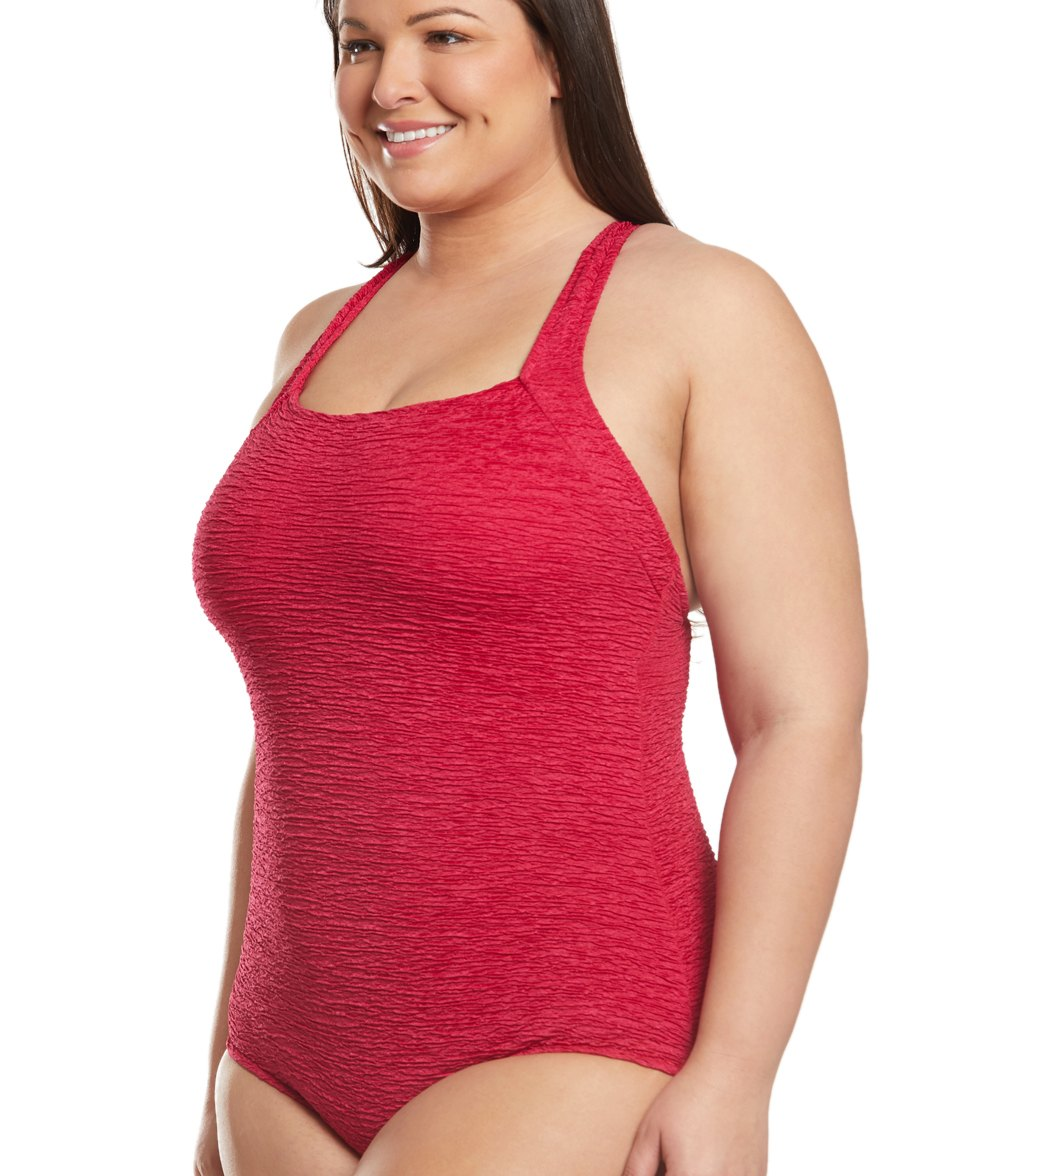 1ca7f6f725 Penbrooke Krinkle Plus Size Chlorine Resistant One Piece Active Back  Swimsuit